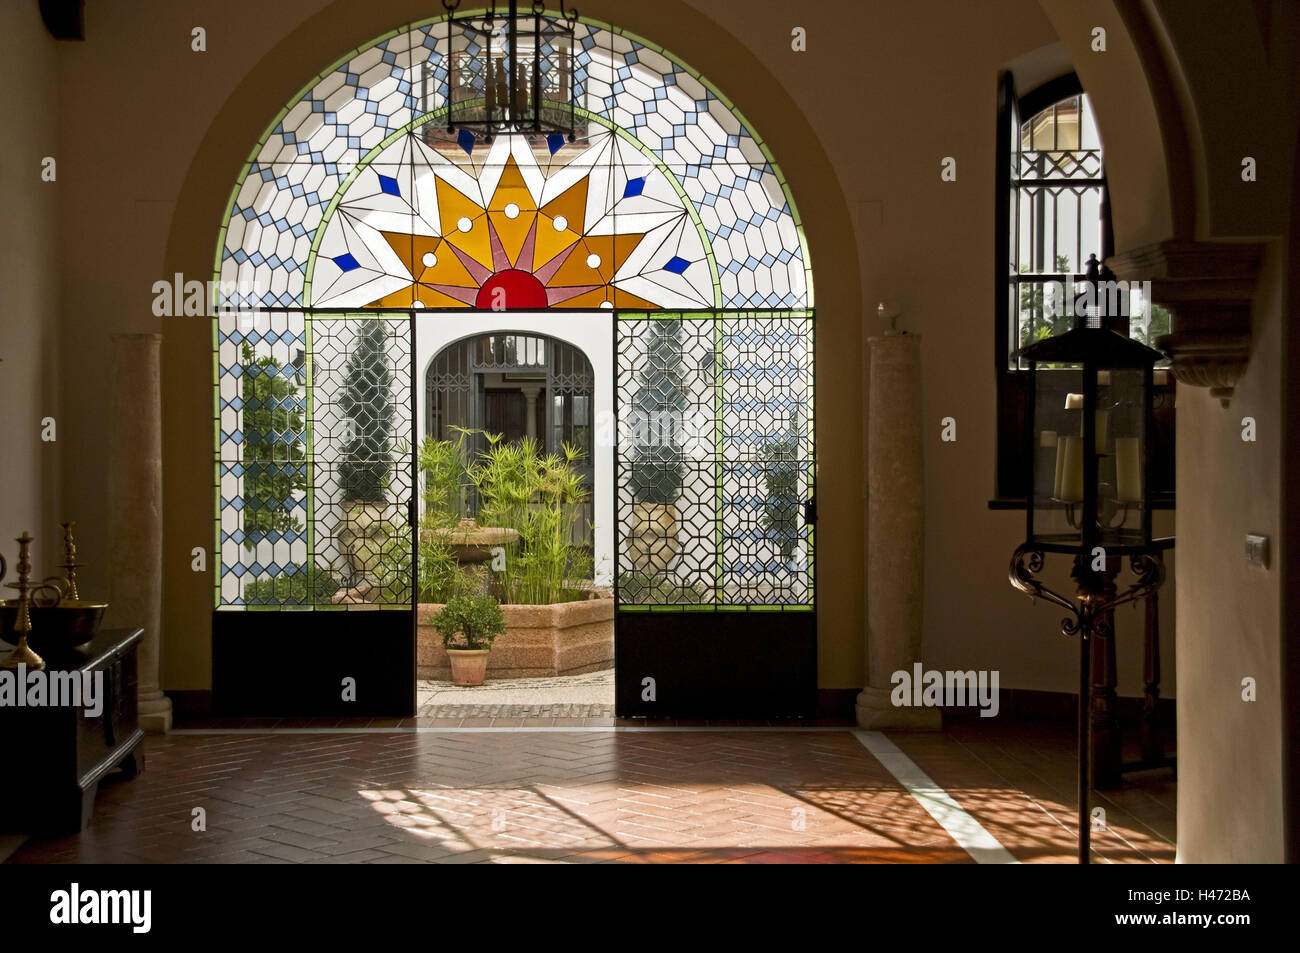 Spain Cordoba Ghetto Patio Town Juderia Building Input Goal Stock Photo Alamy